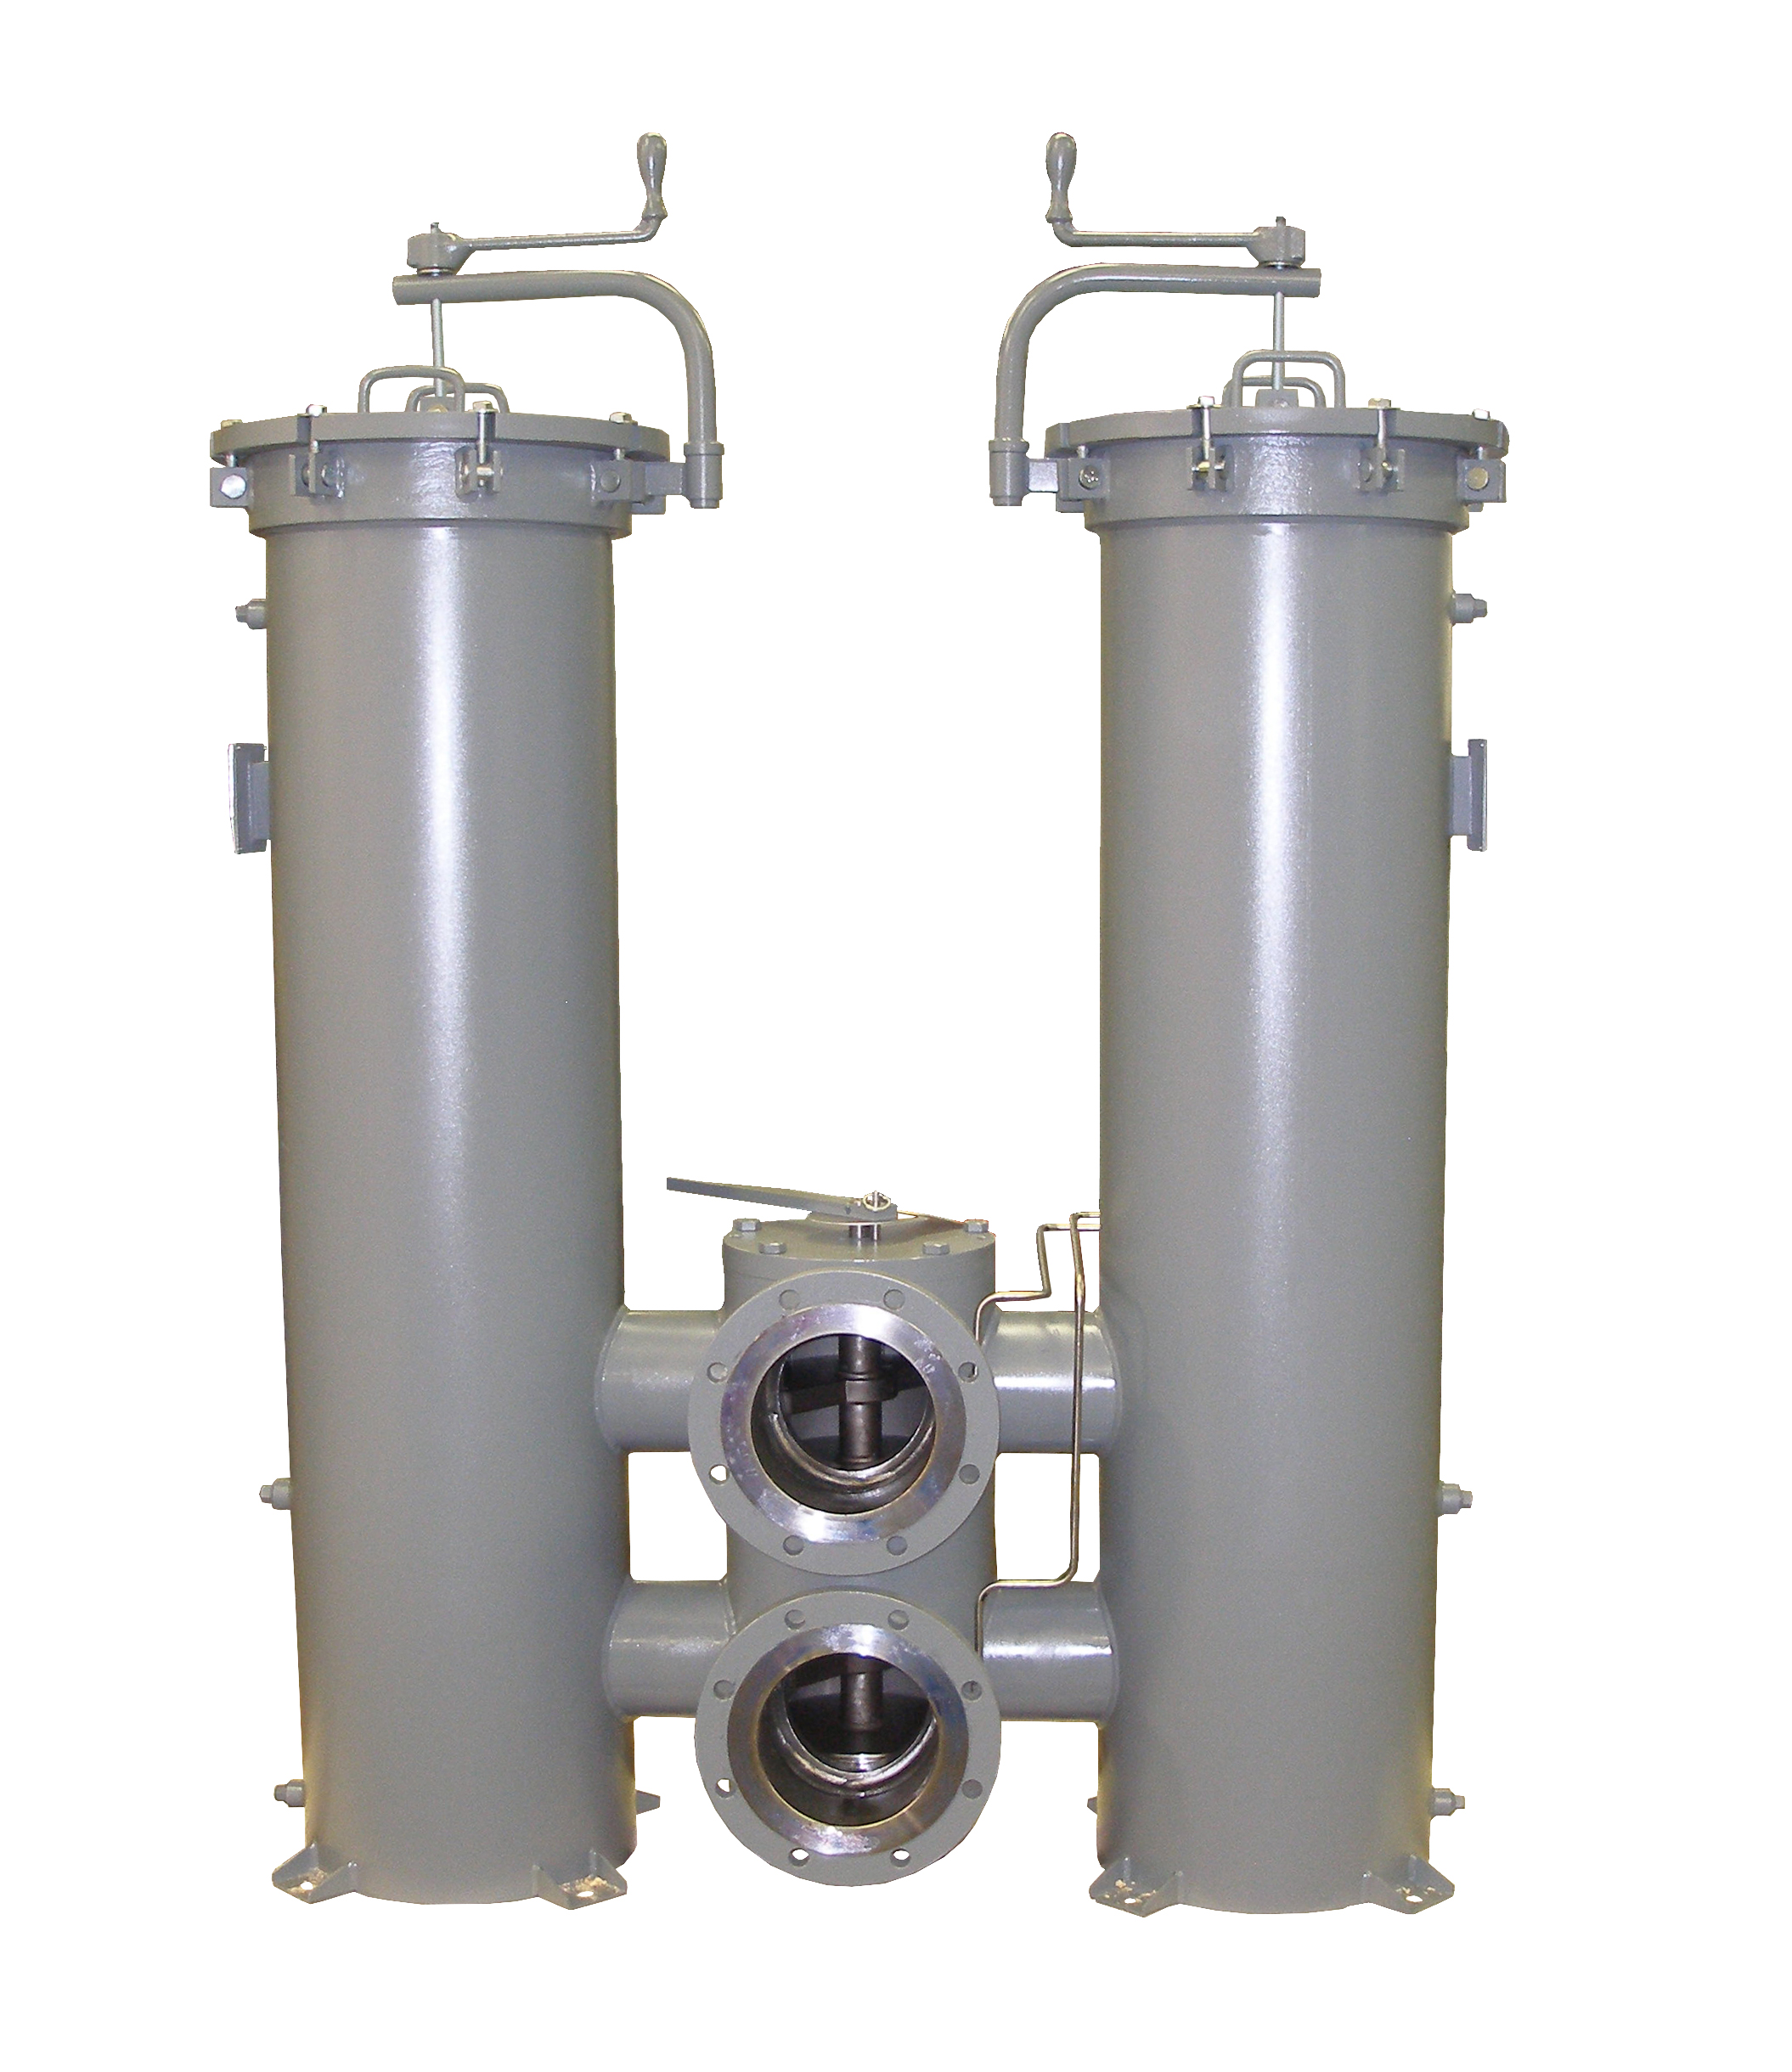 Hilliard Corporation Hilco Fluid Filter Housings Fuel Strainers And Filters Duplex Liquid Housing